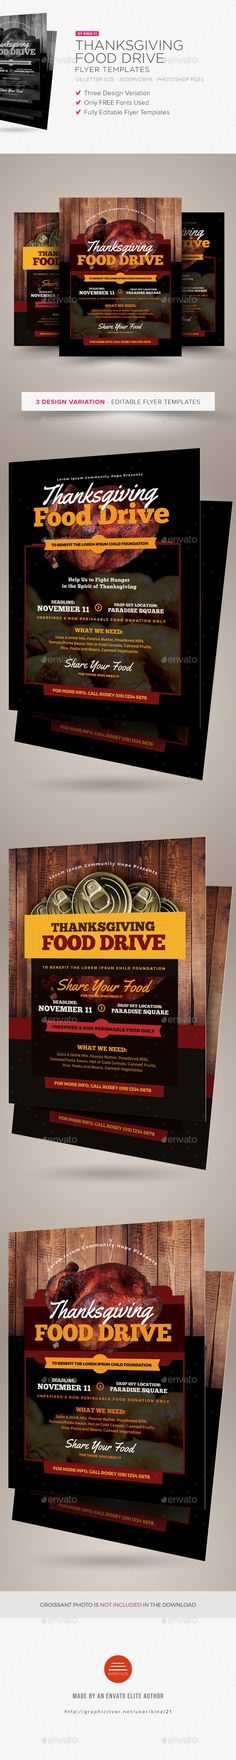 Thanksgiving Food Drive Flyer Templates  — PSD Template #leaflet #advert • Download ➝ https://graphicriver.net/item/thanksgiving-food-drive-flyer-templates/18507261?ref=pxcr